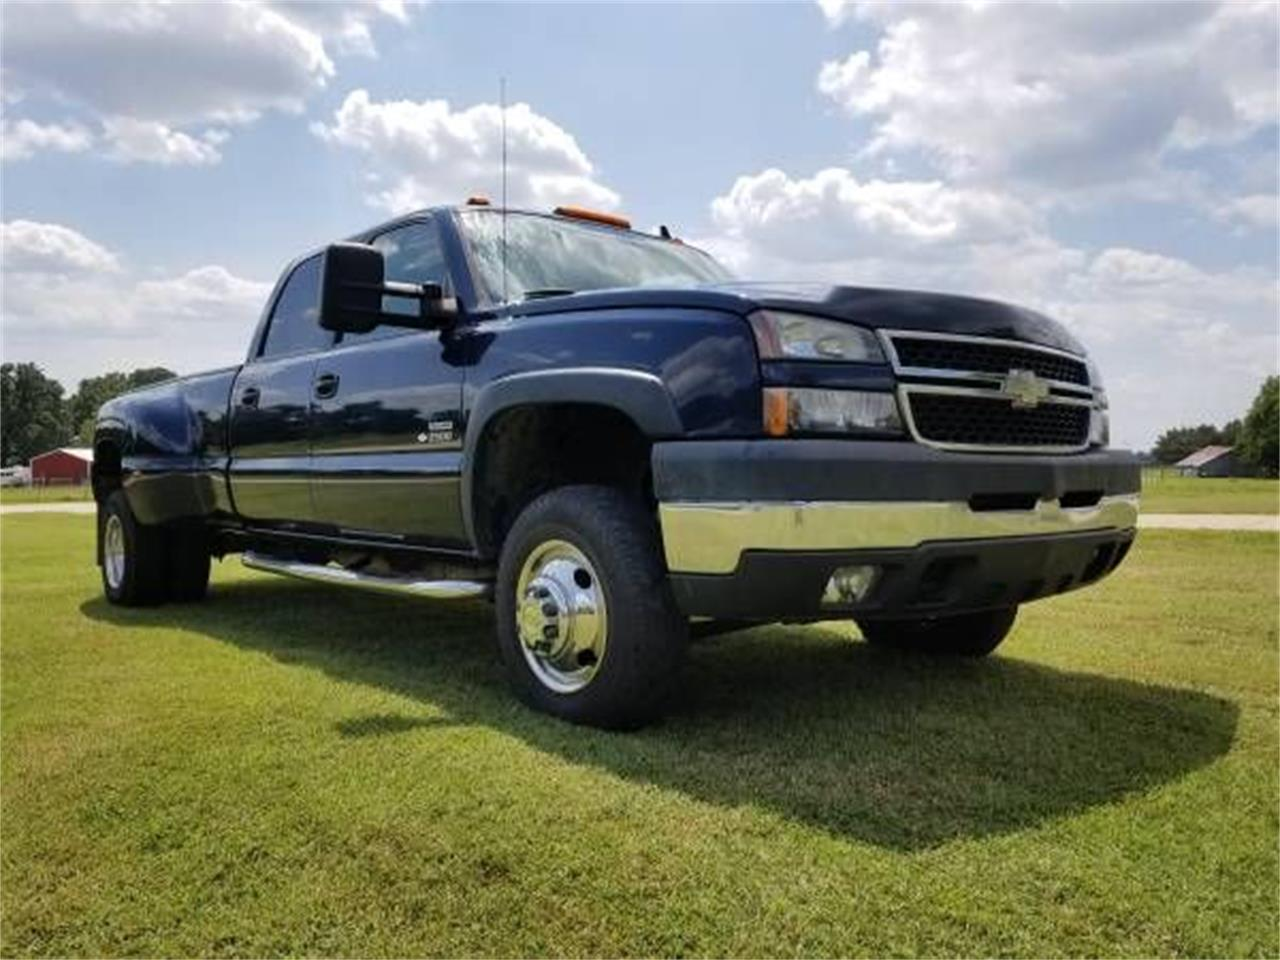 2006 Chevrolet Silverado (CC-1246092) for sale in Cadillac, Michigan